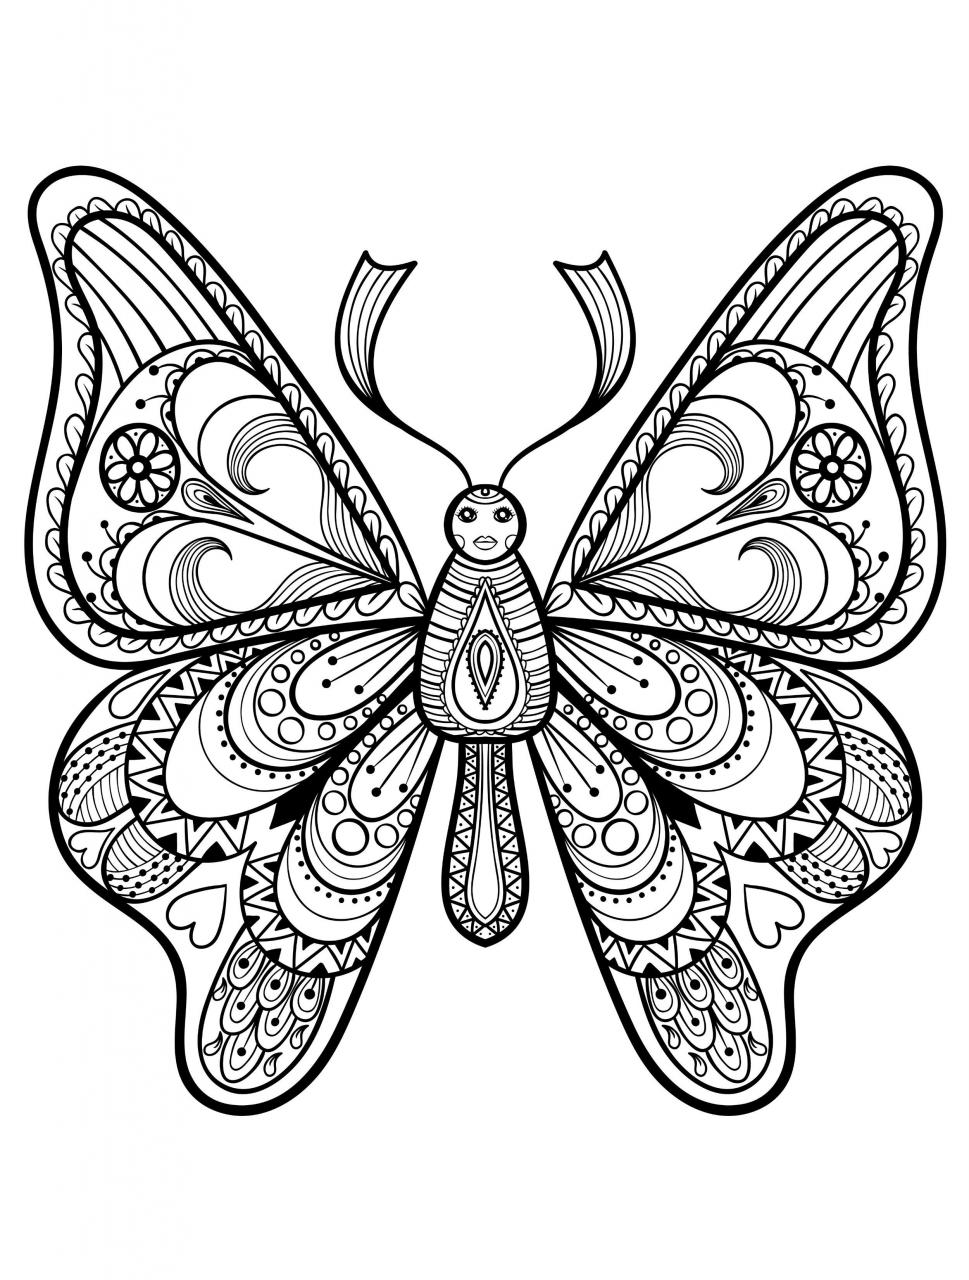 butterfly mandala coloring pages butterfly mandala coloring pages at getcoloringscom pages mandala butterfly coloring